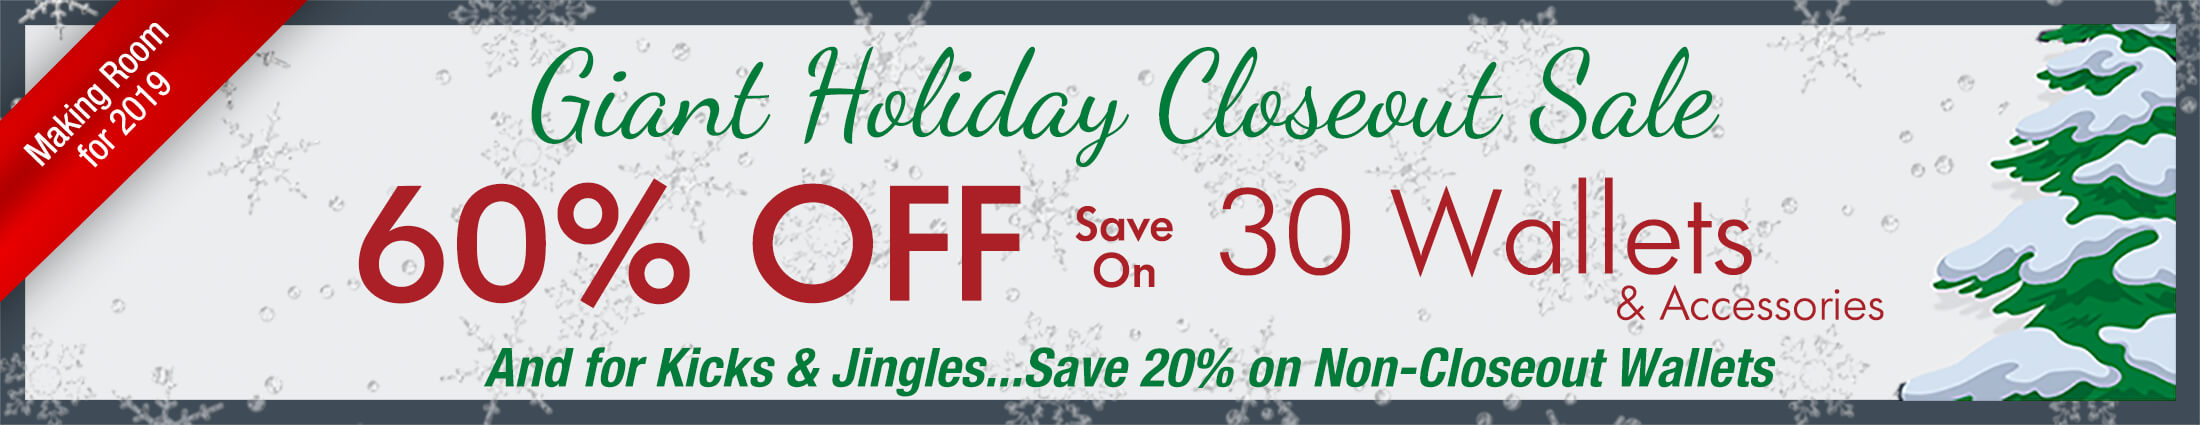 Holiday Closeout Sale 20% to 60% off